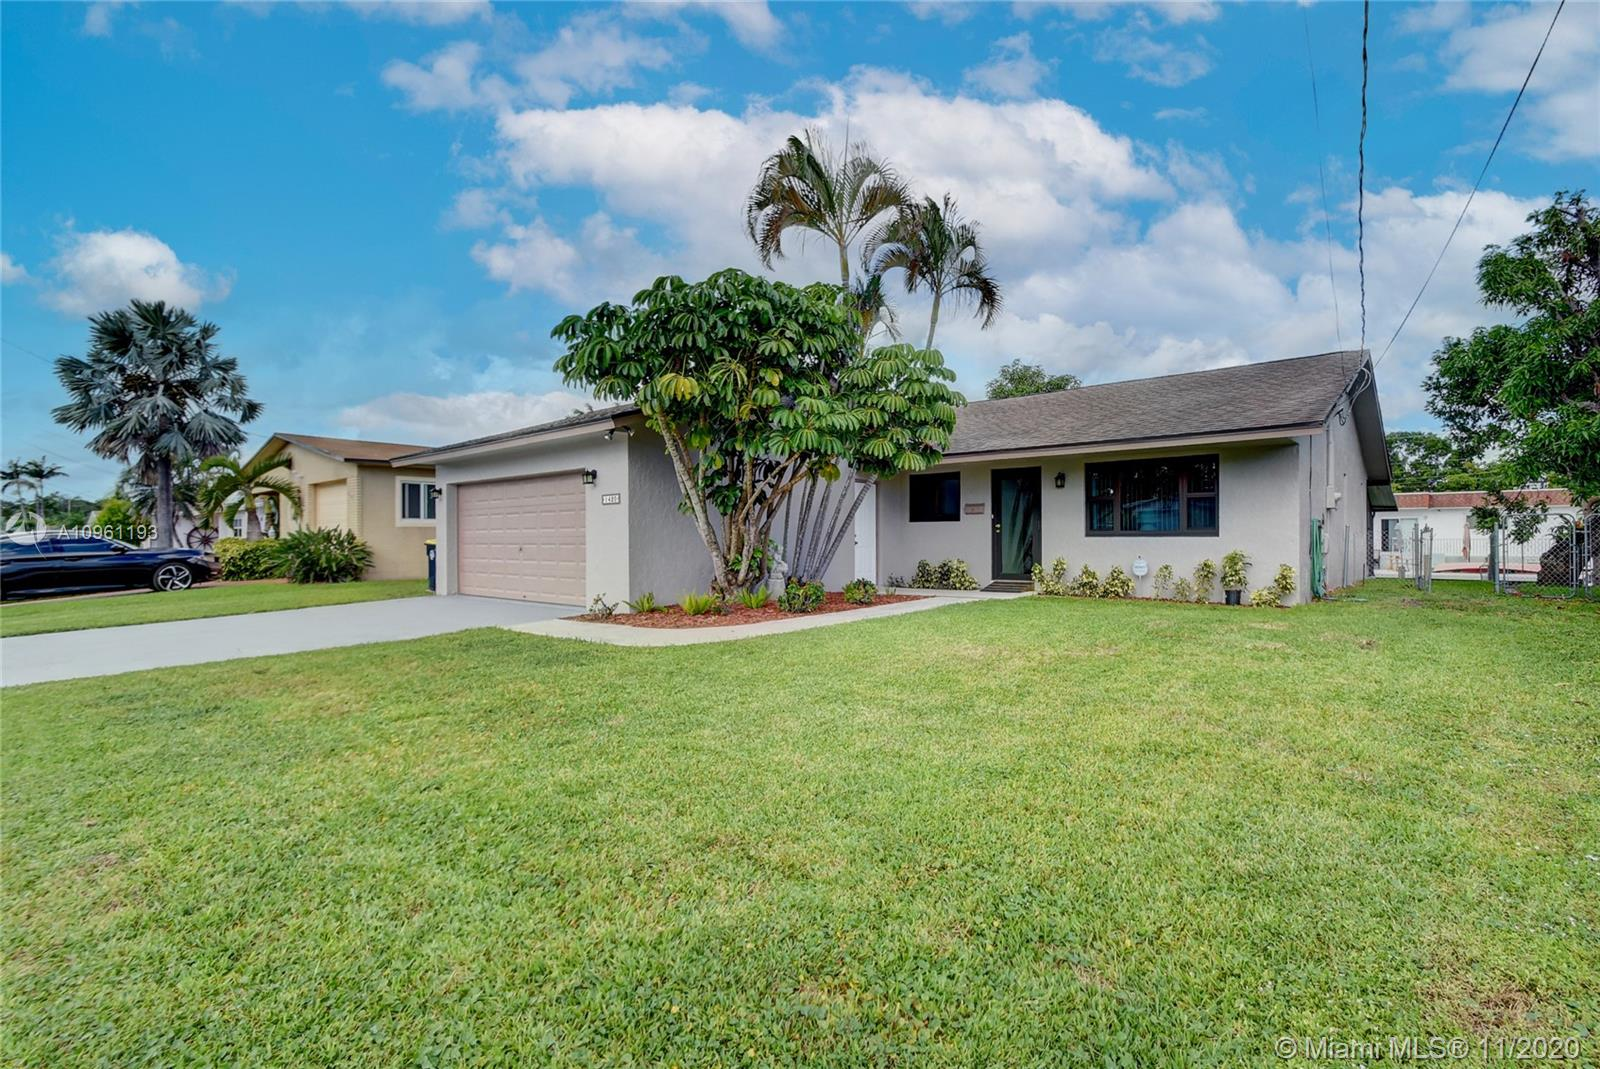 Sought after subdivision MELALEUCA GARDENS! Perfect home for boaters who want easy ocean access. You have your own boat dock and lift in your backyard! Just off the Dania Cutoff Canal, close to the Intracoastal and Port Everglades. This 3/2 has a great layout with brand new hurricane impact windows throughout and hurricane impact doors. The Interior and exterior of the home have just been repainted from top to bottom. New drain field and septic tank. Immaculate 2 car garage which is unusual for this community. Newly painted patio with new screening as well. Newer air conditioner. Excellent shopping and dining at nearby Dania Pointe, Las Olas, The Hard Rock, Hollywood. Did I mention no HOA! Must see! This home WILL NOT last!!